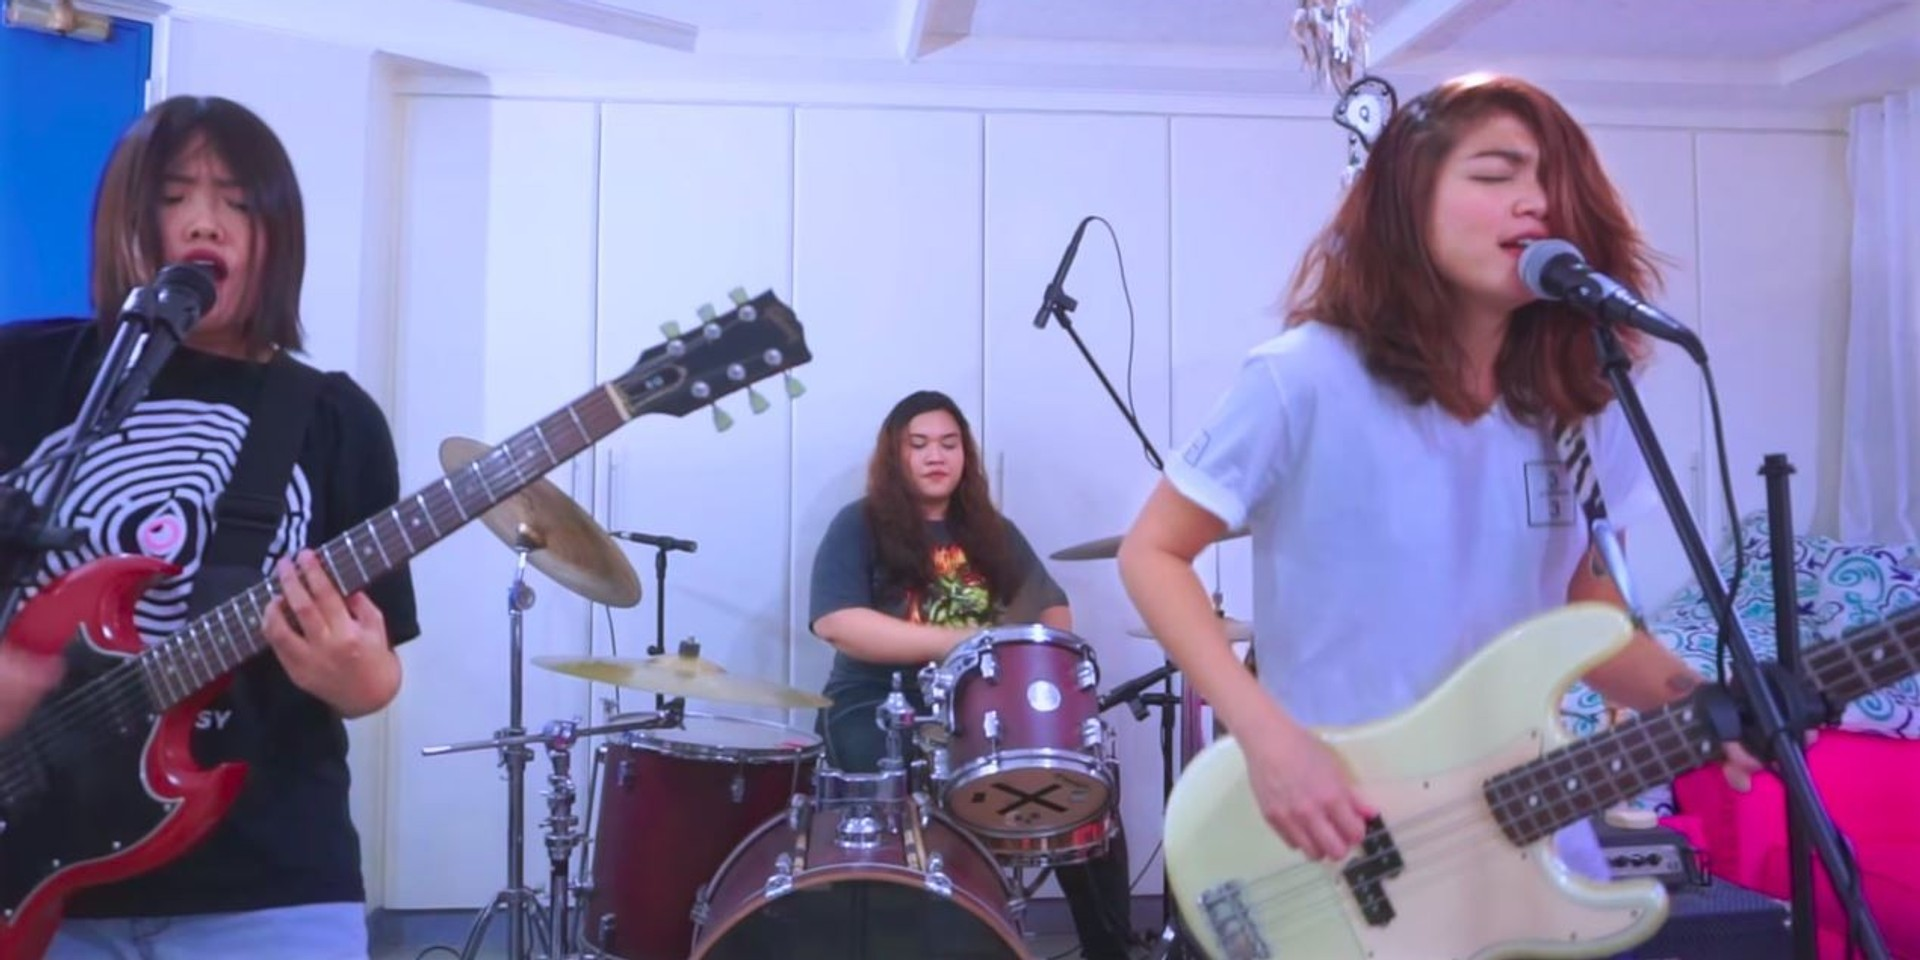 3/3 share live performance video for 'Wr U At?' – watch